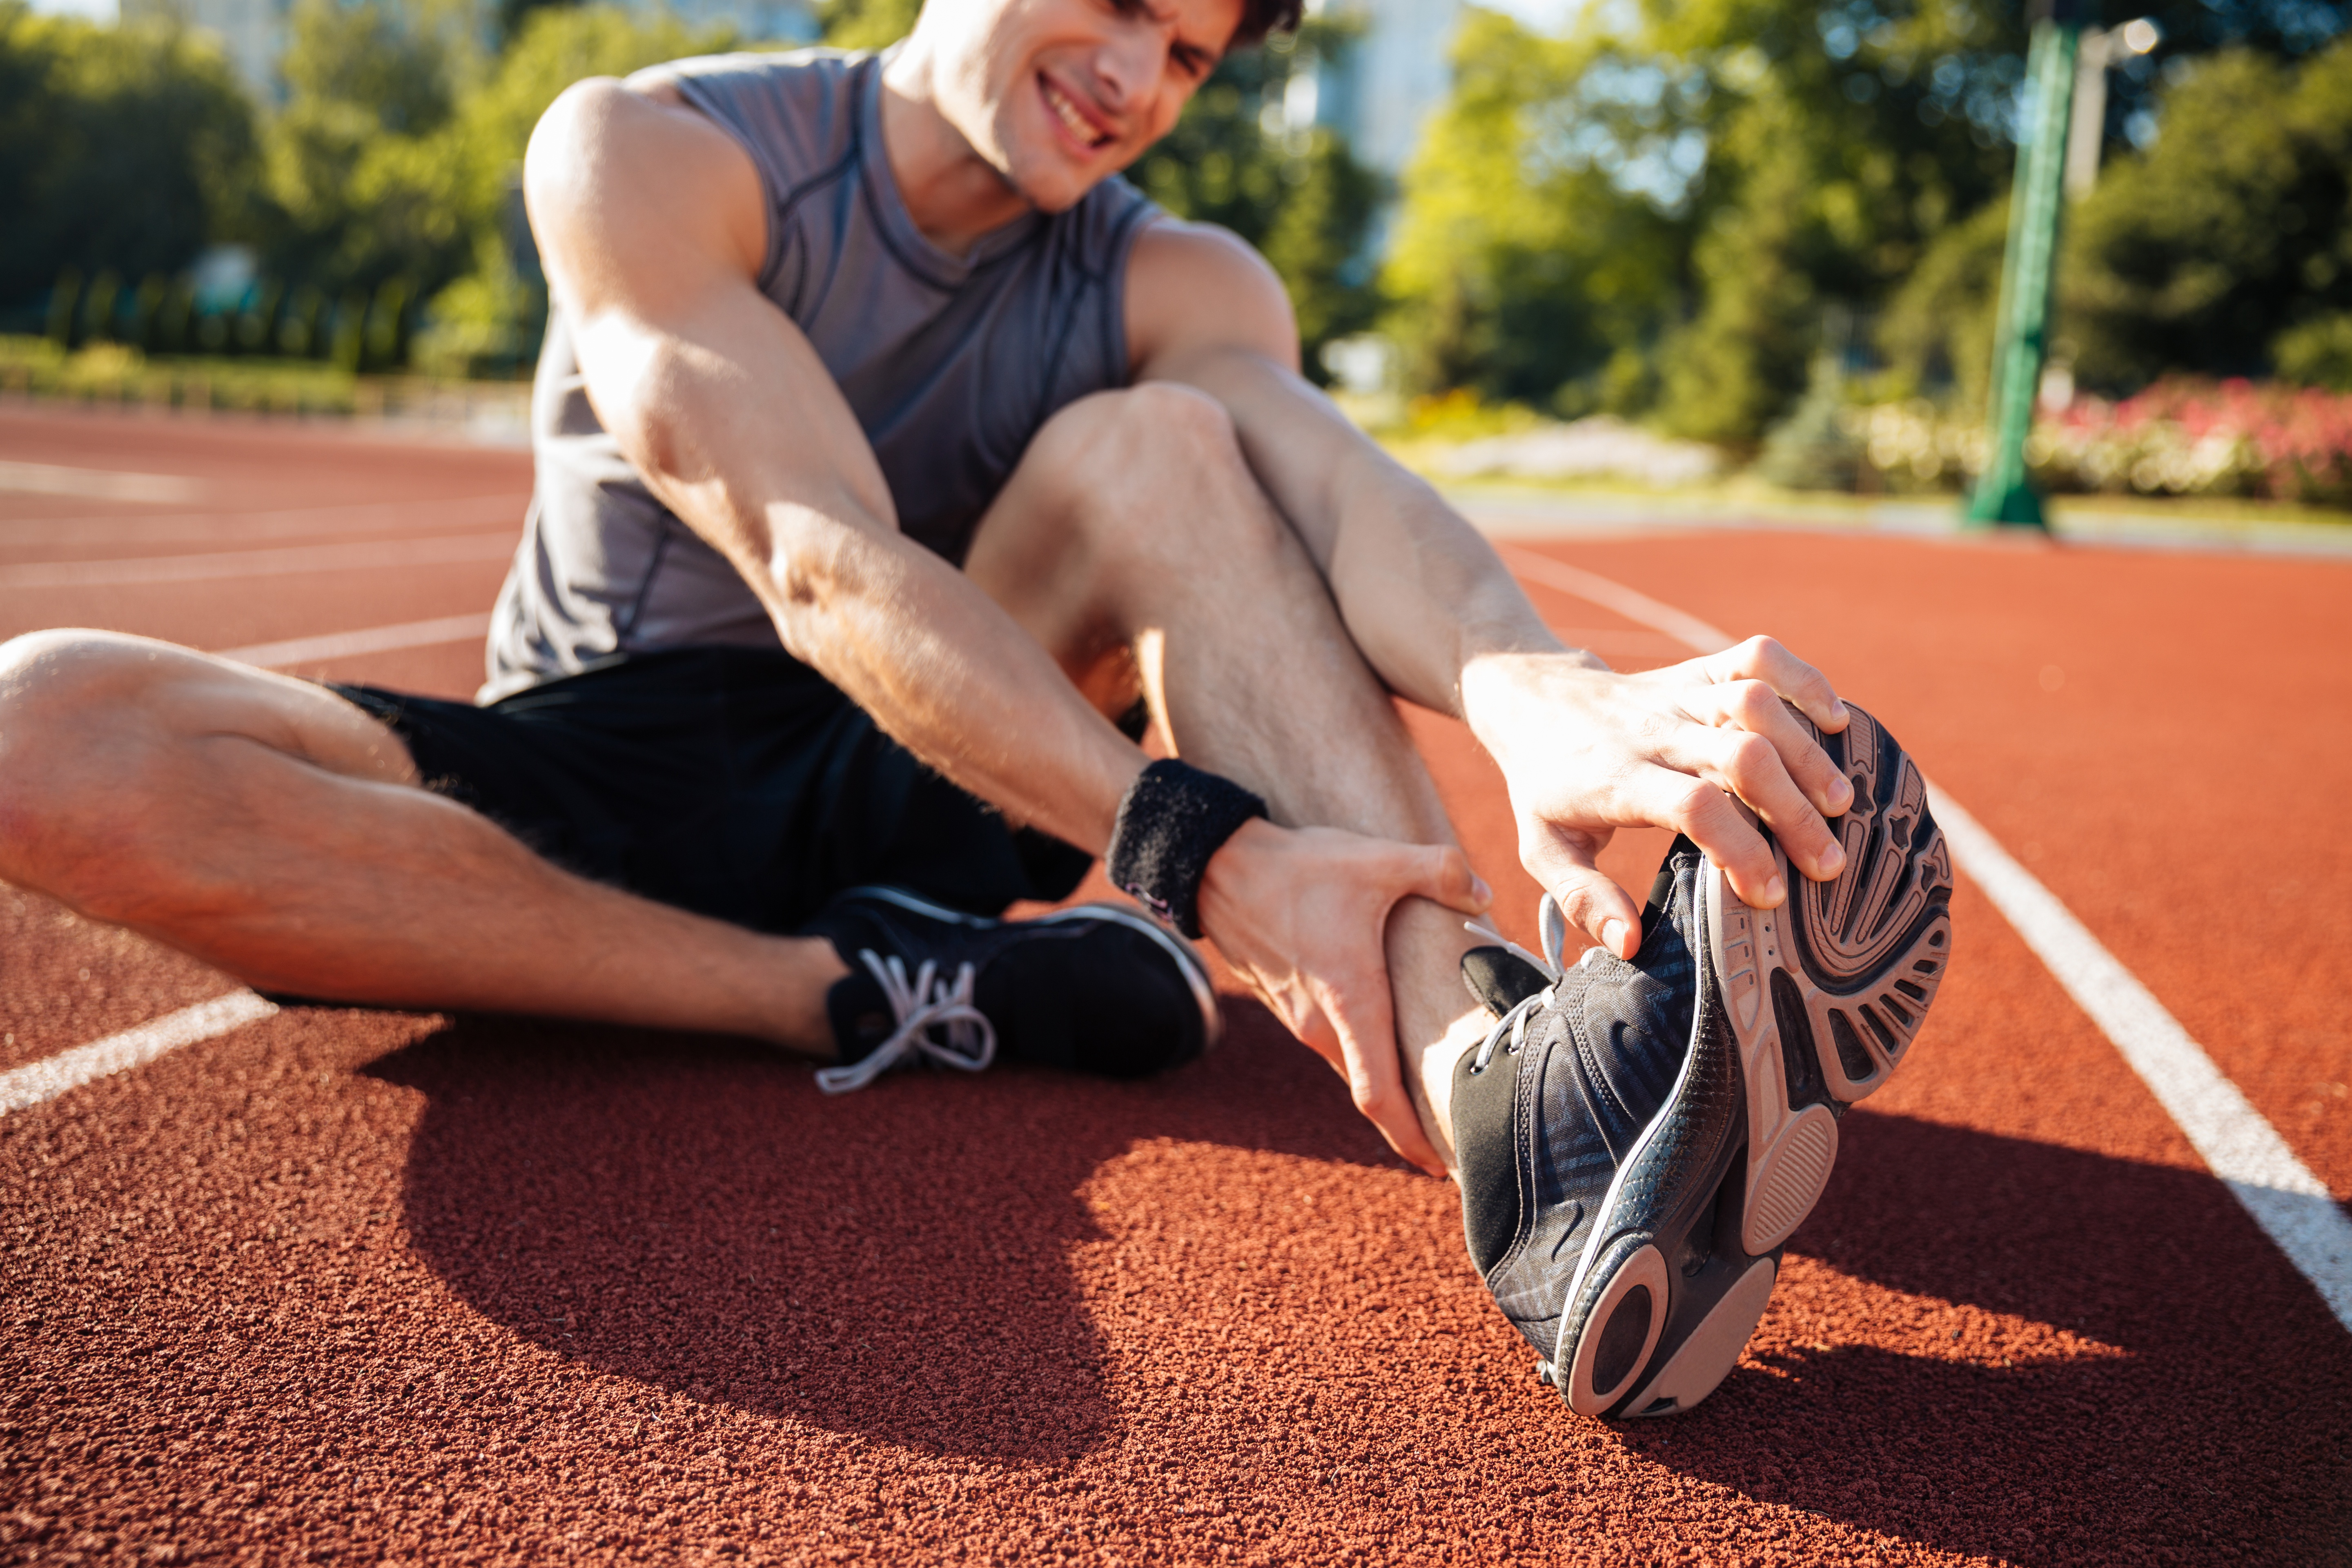 graphicstock-cropped-image-of-a-runner-suffering-from-leg-cramp-at-the-stadium_SuWfIeXrhx.jpg